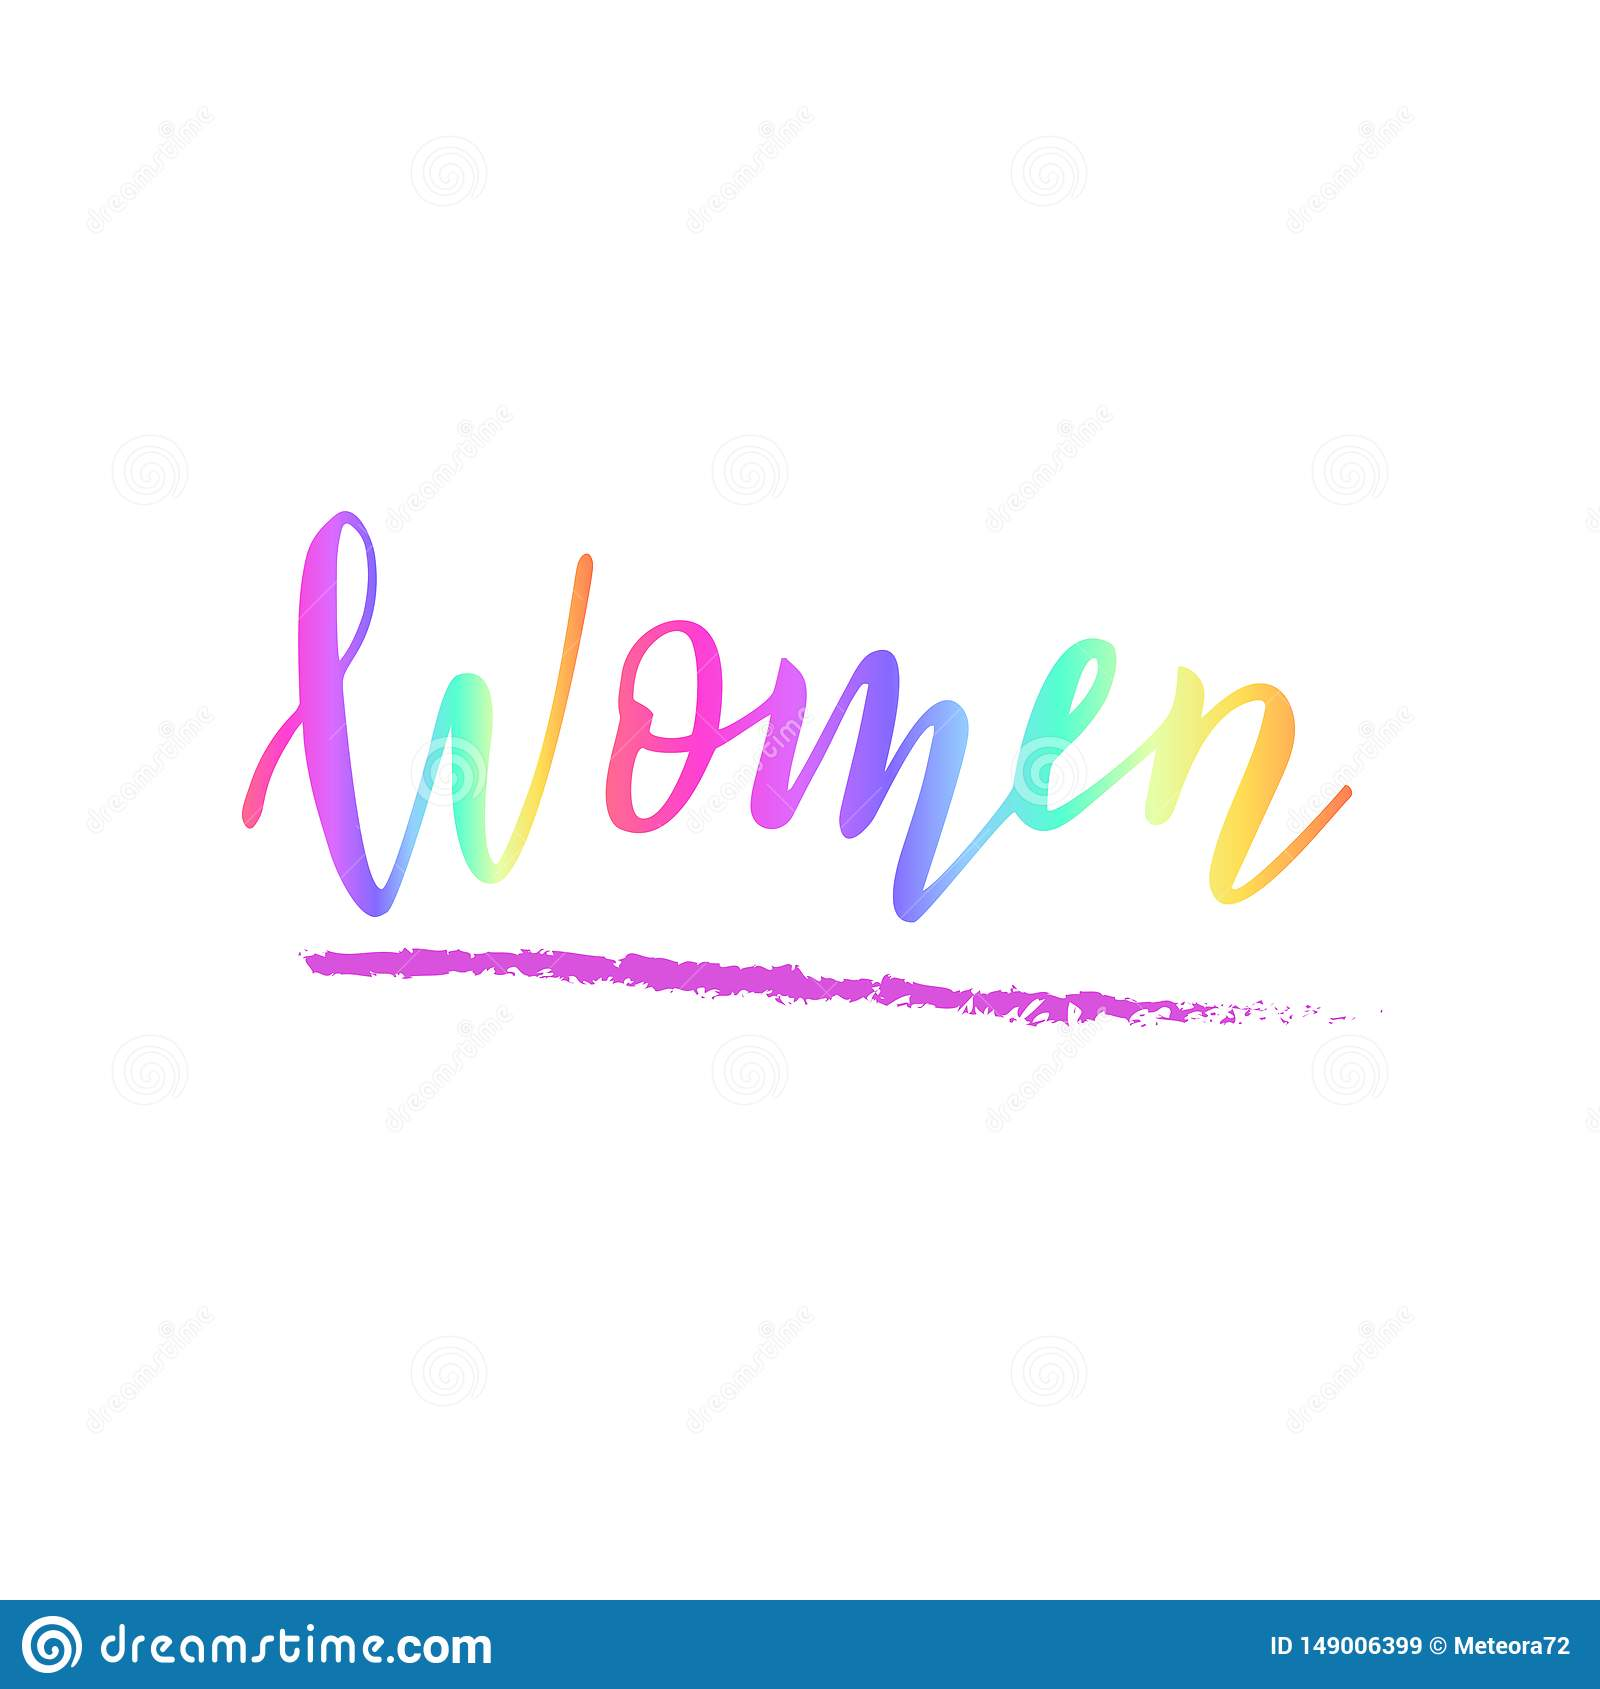 Handwritten women text. Concept of female diversity. Feminist quote. Sticker or clothes print.